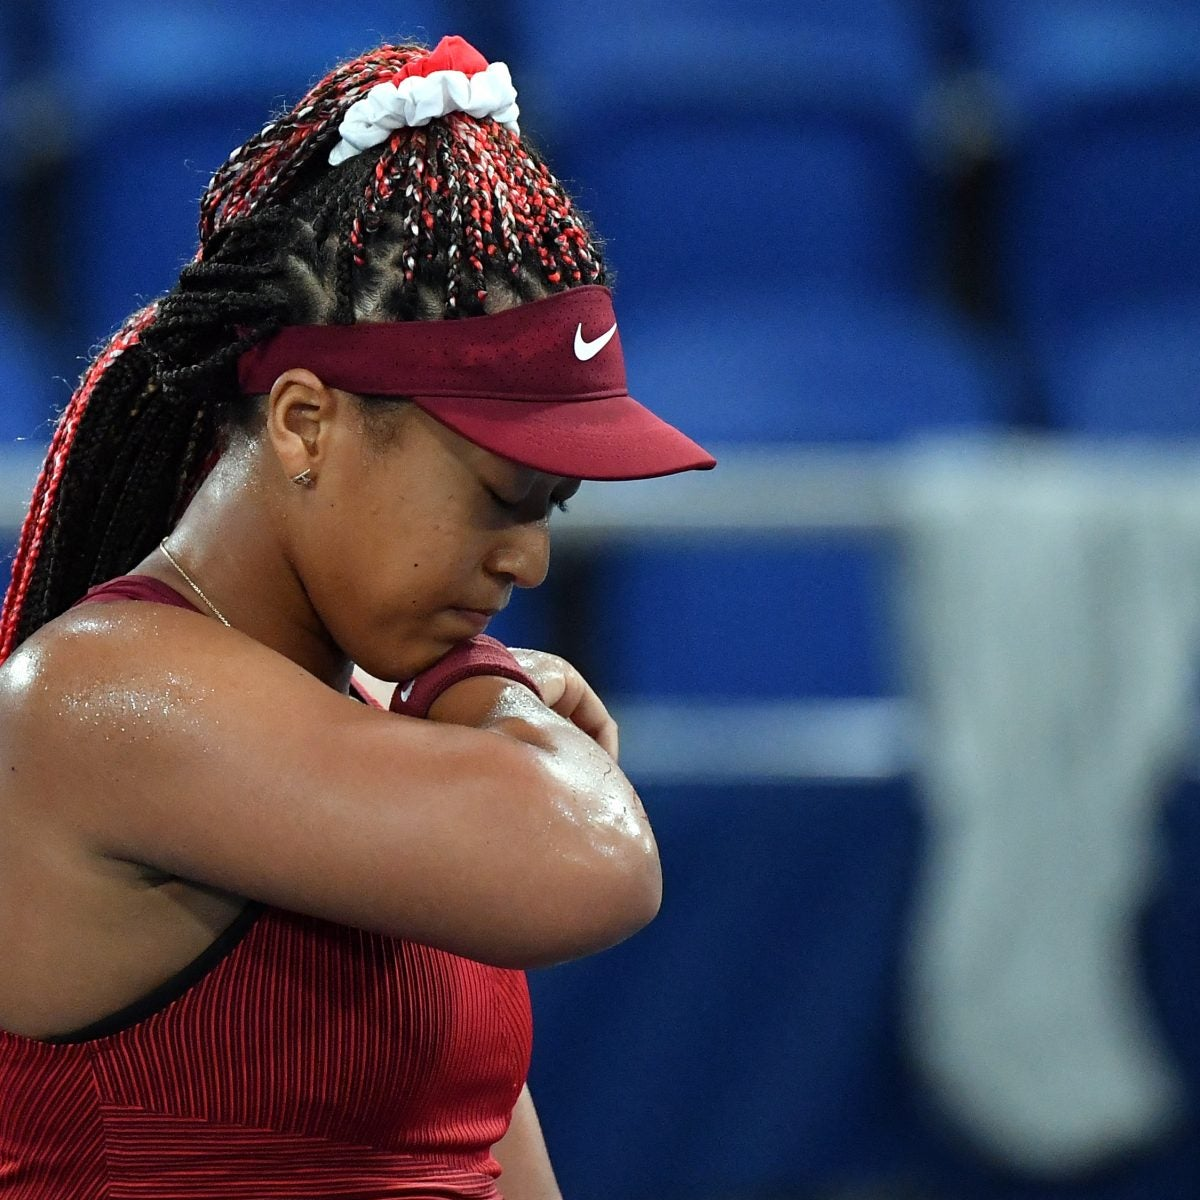 Naomi Osaka Cries After Journalist Asks A Question Her Rep Says Was Meant 'To Intimidate'